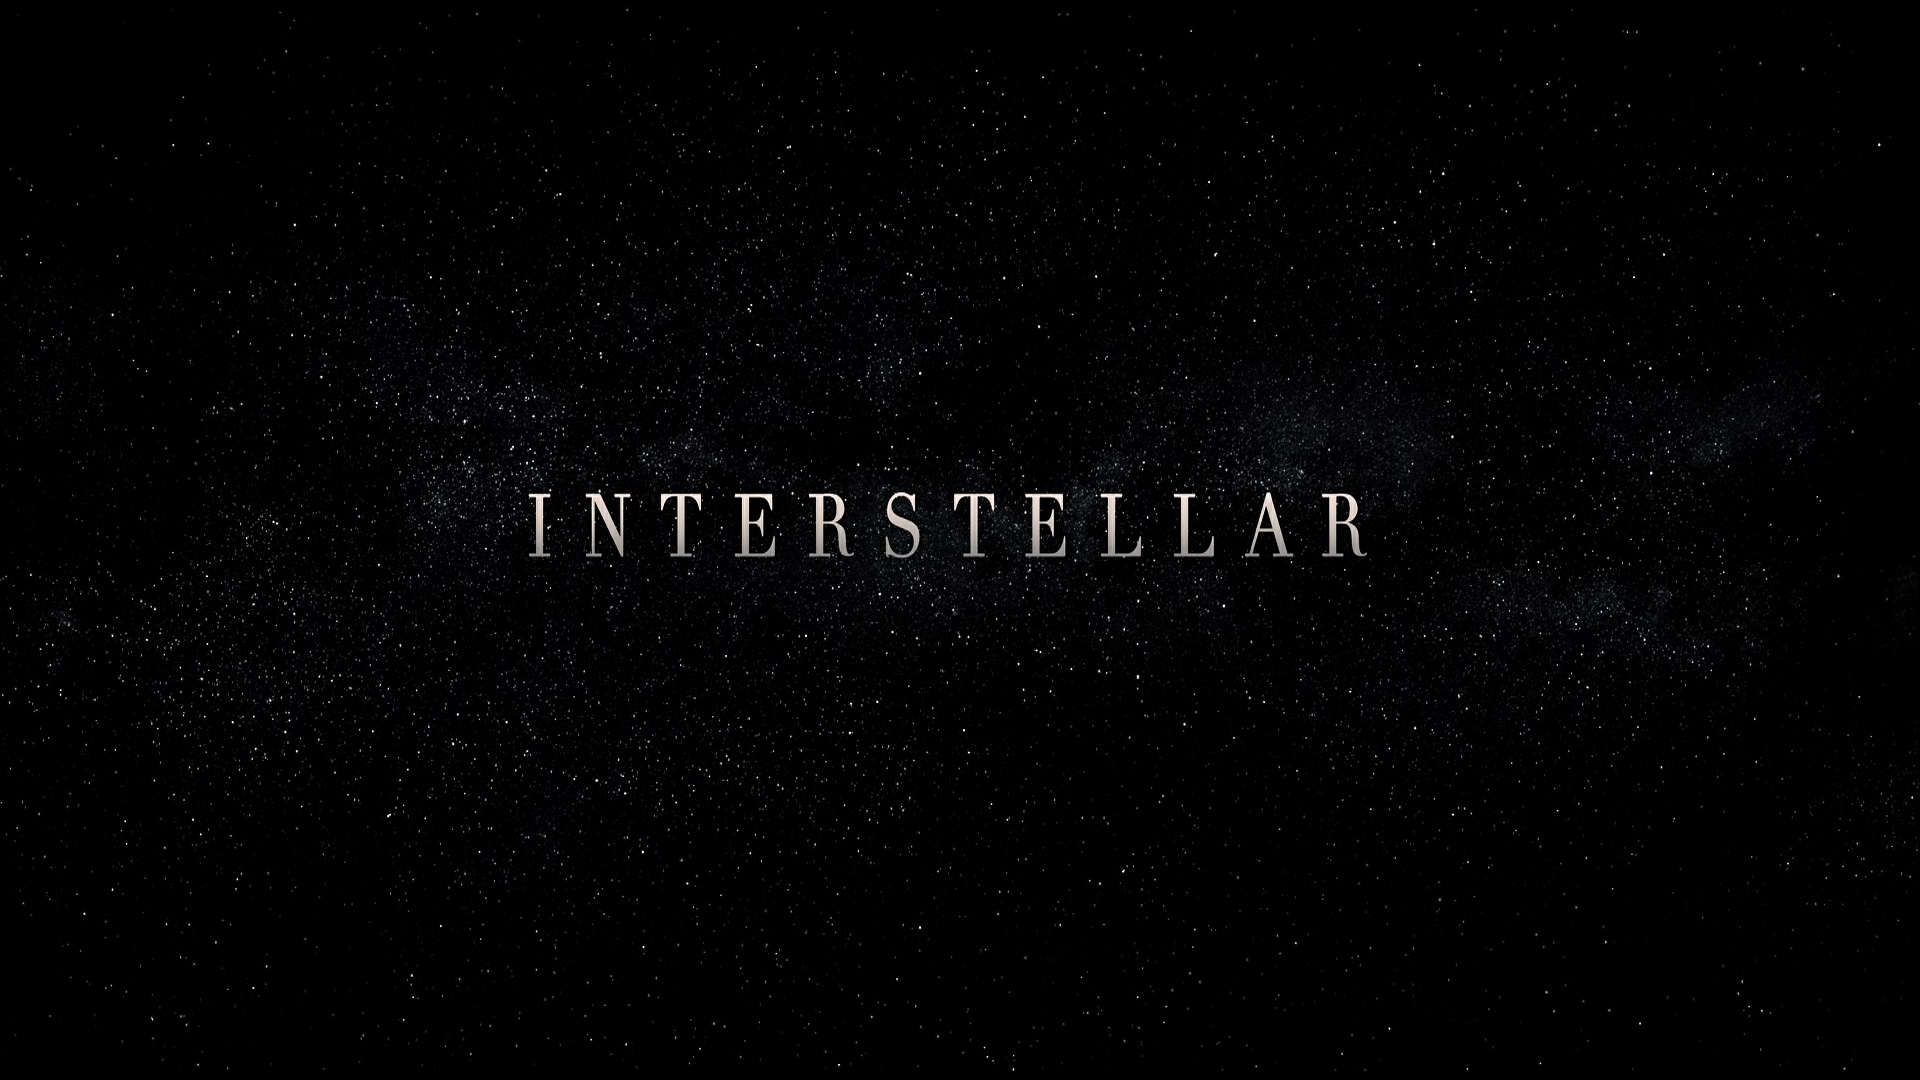 Volleyball Wallpaper Quotes 9 Hd Interstellar Movie Wallpapers